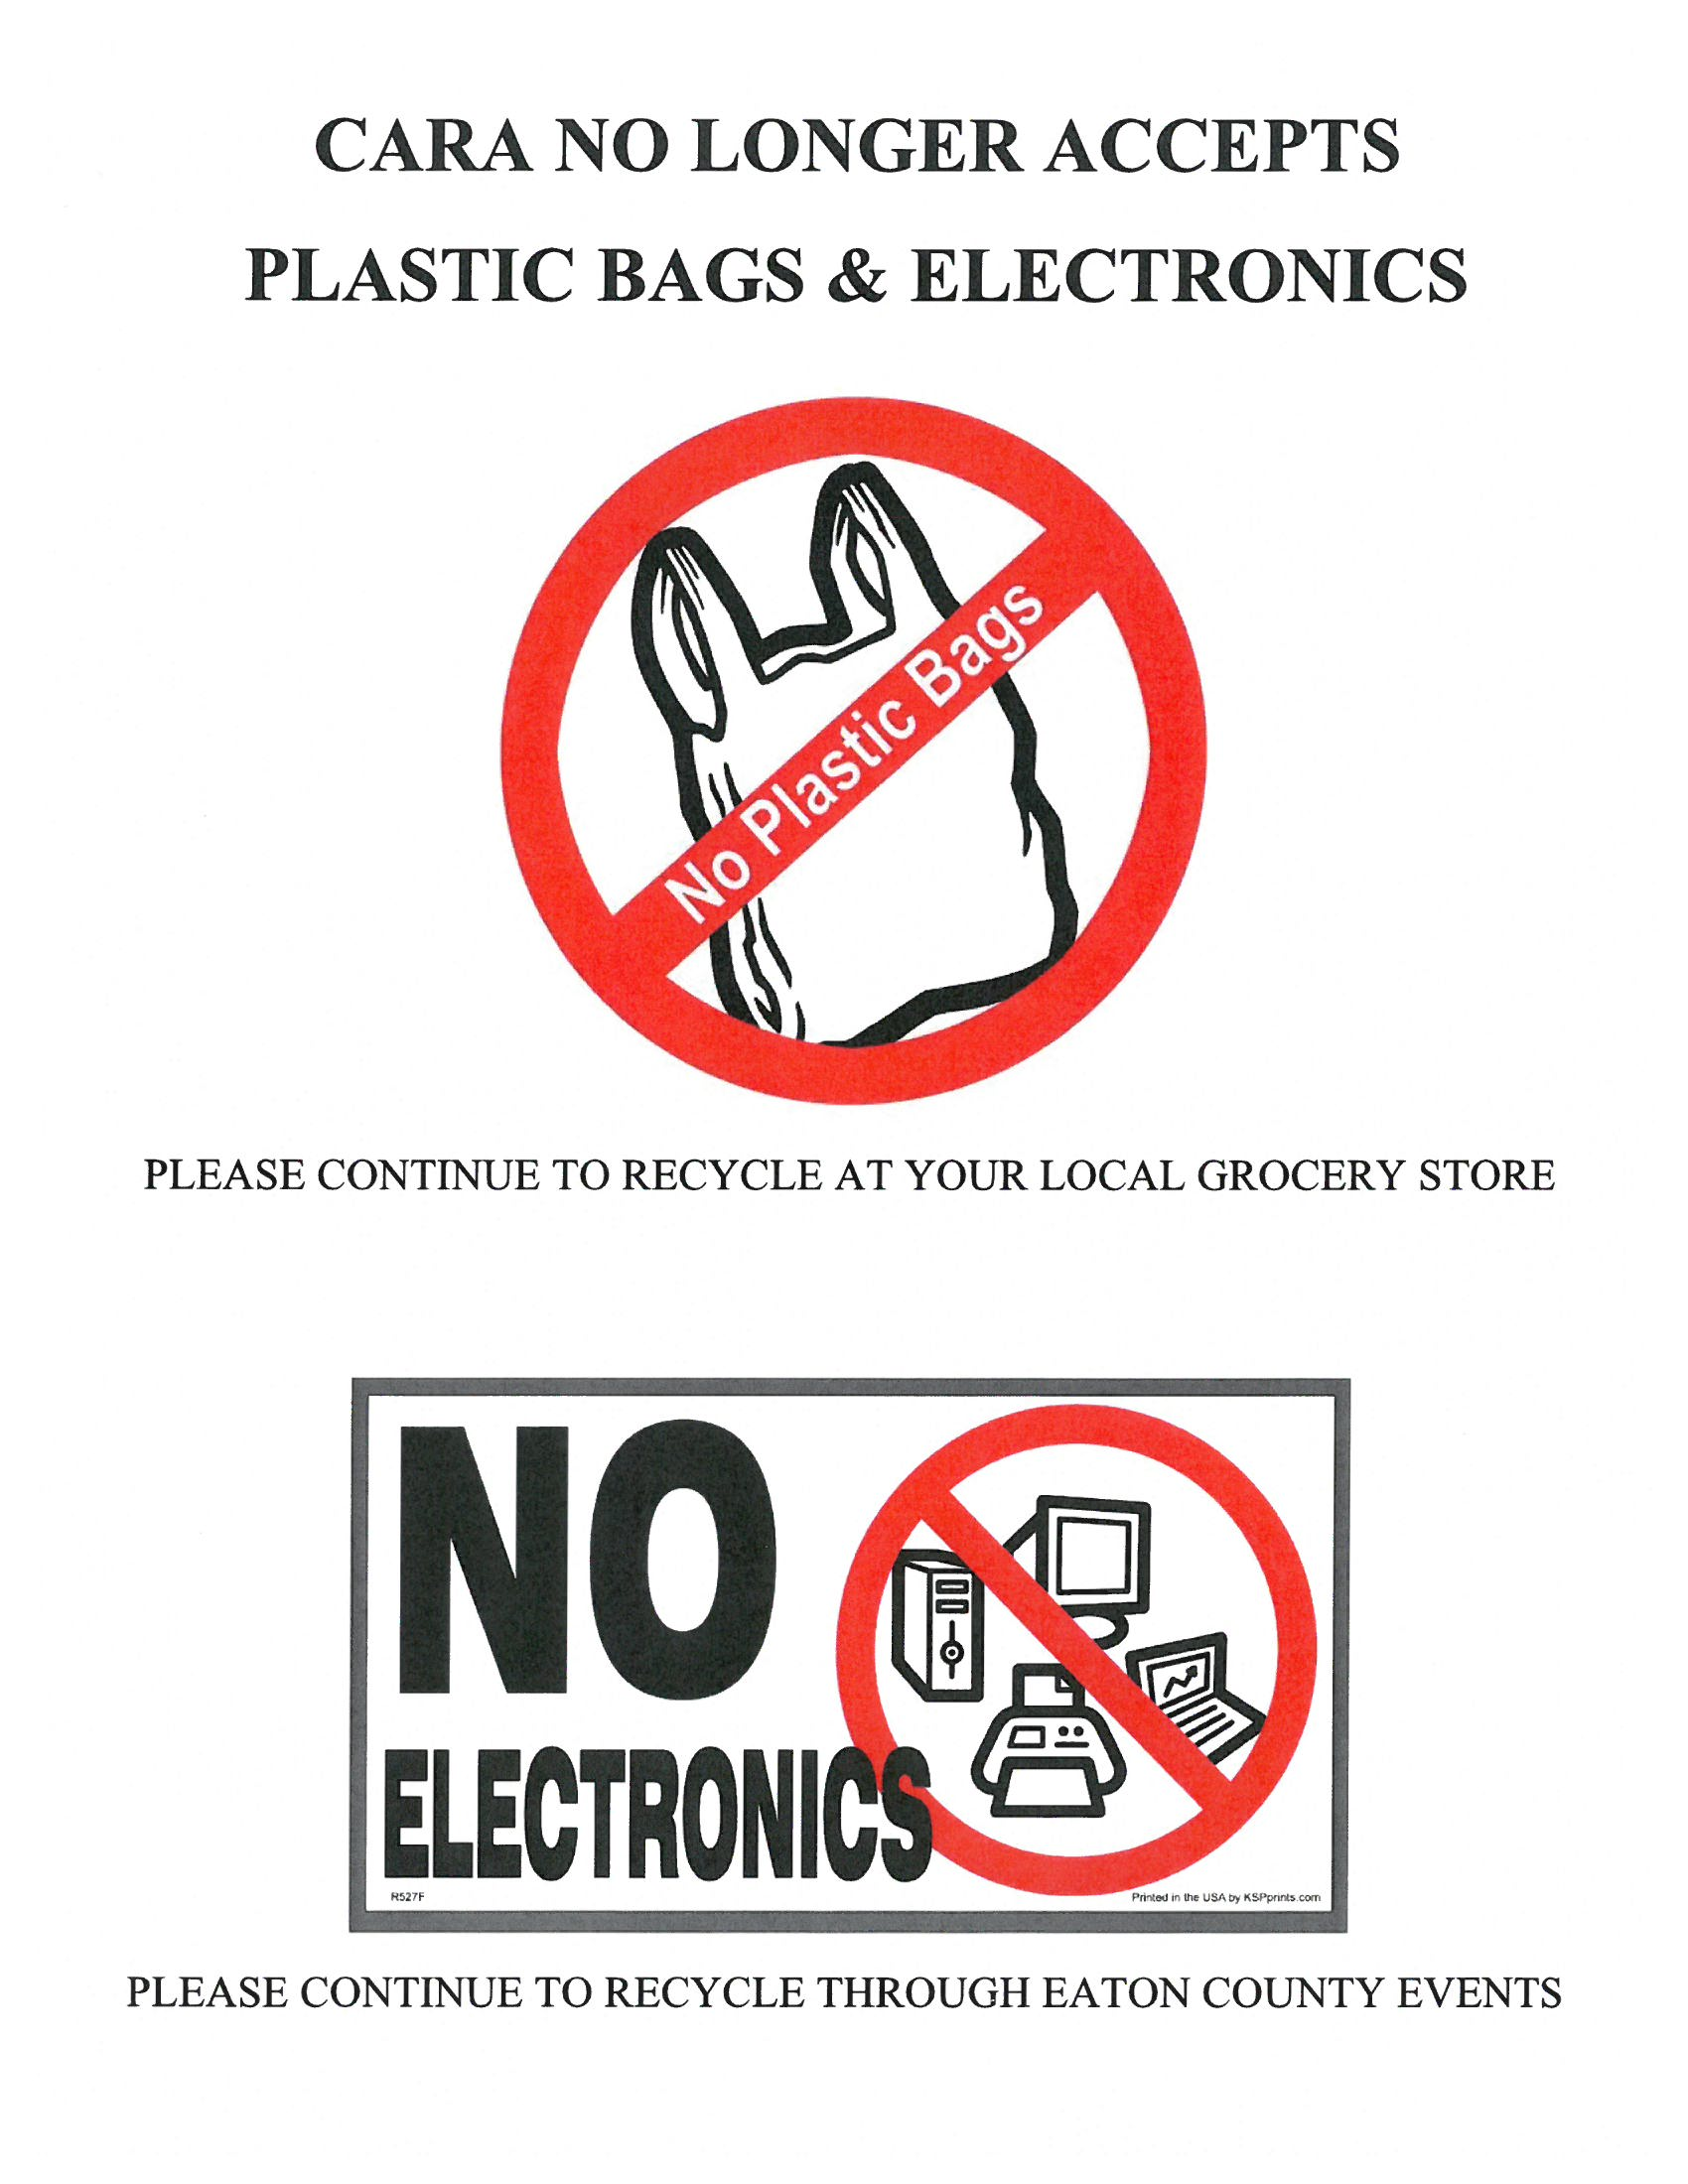 No Bags and Electronic